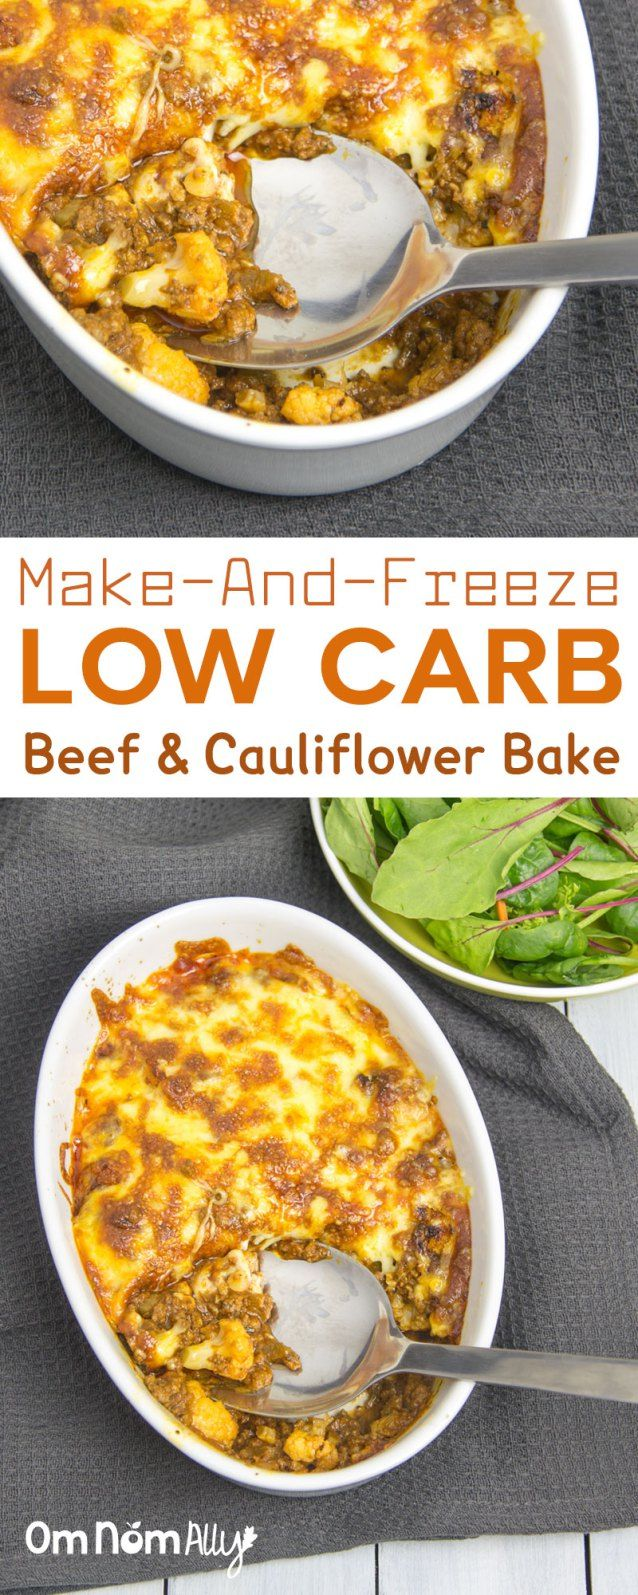 Low Carb Beef & Cauliflower Pasta Bake | Om Nom Ally